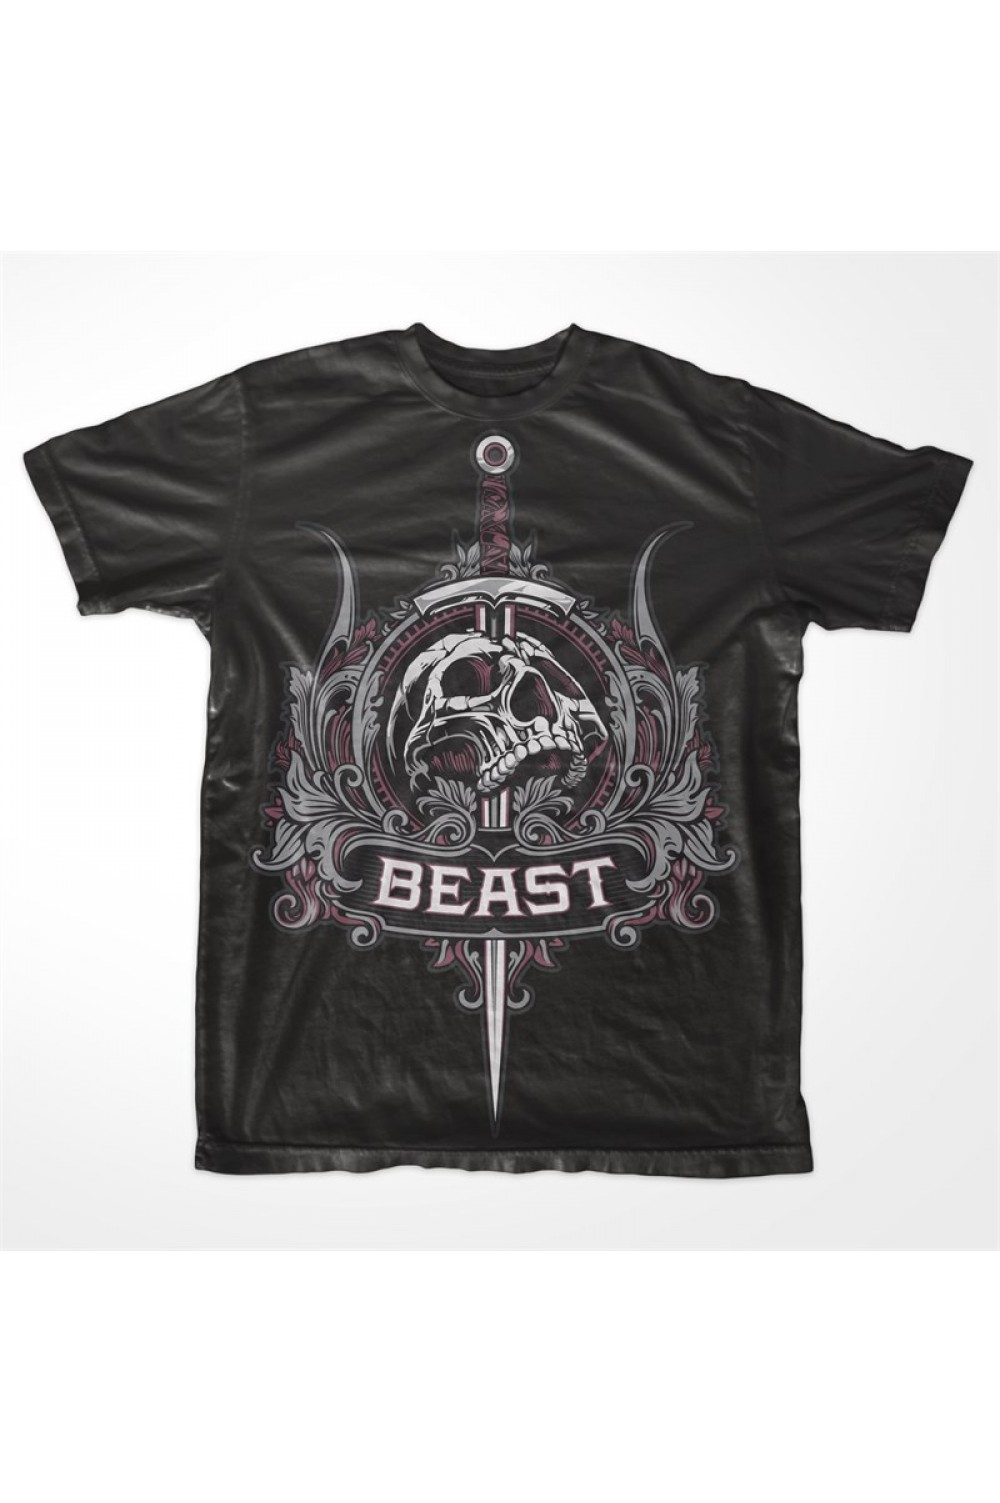 "Skull Beast Men Printed T-shirt 4026 ""Beast"""